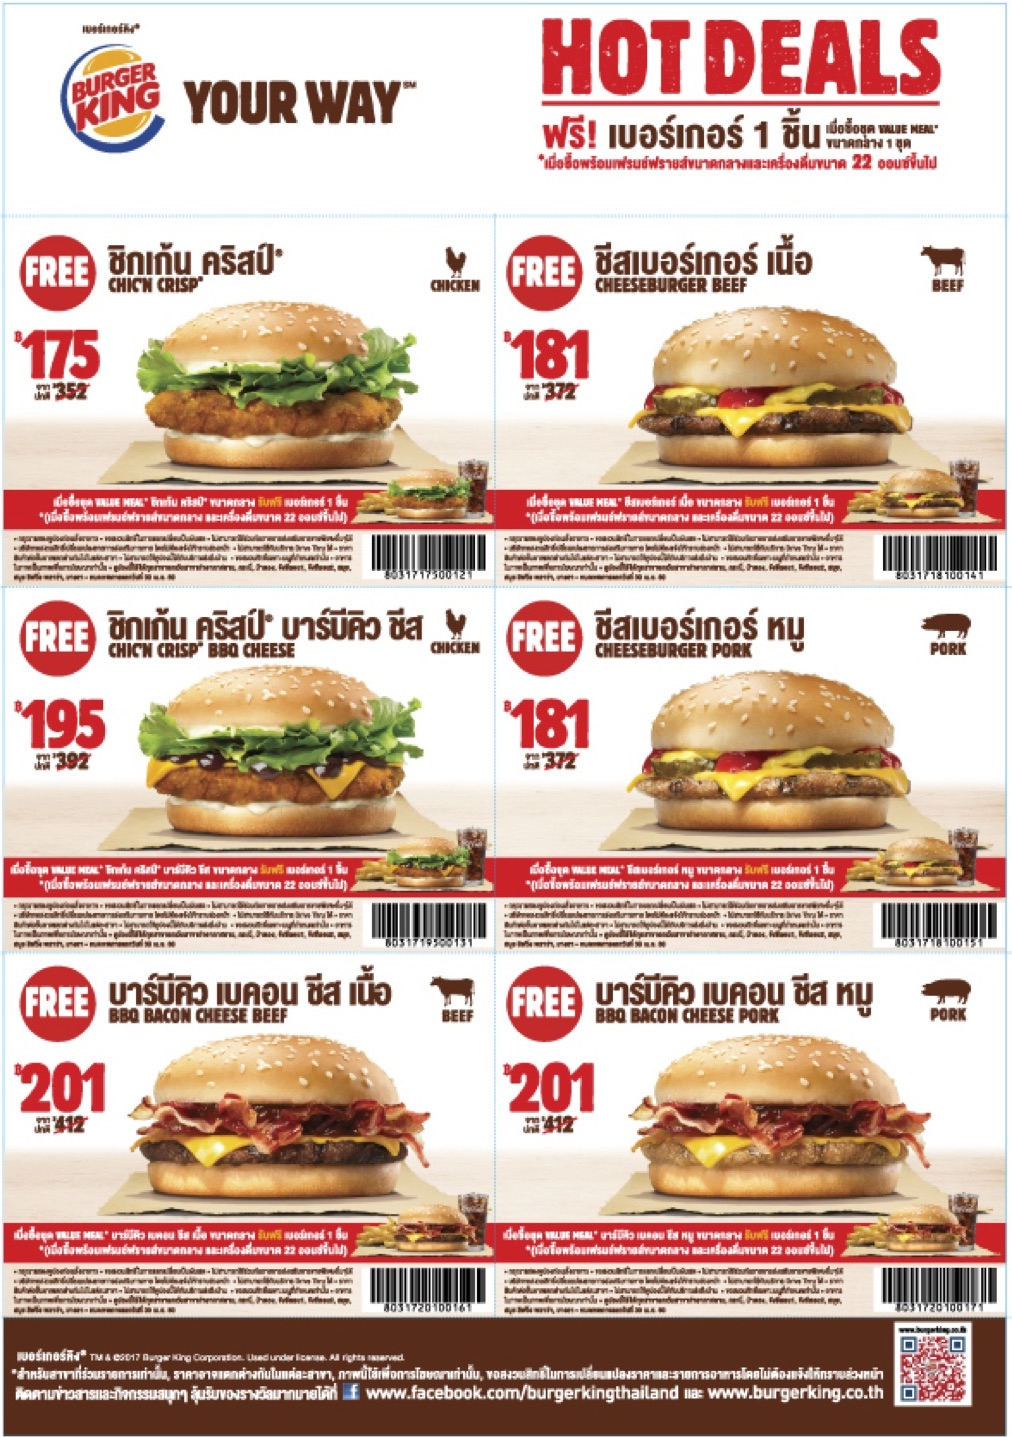 Promotion Burger King Hot Deals buy 1 Get 1 Free and Special Coupon [April.2017] Coupon P1